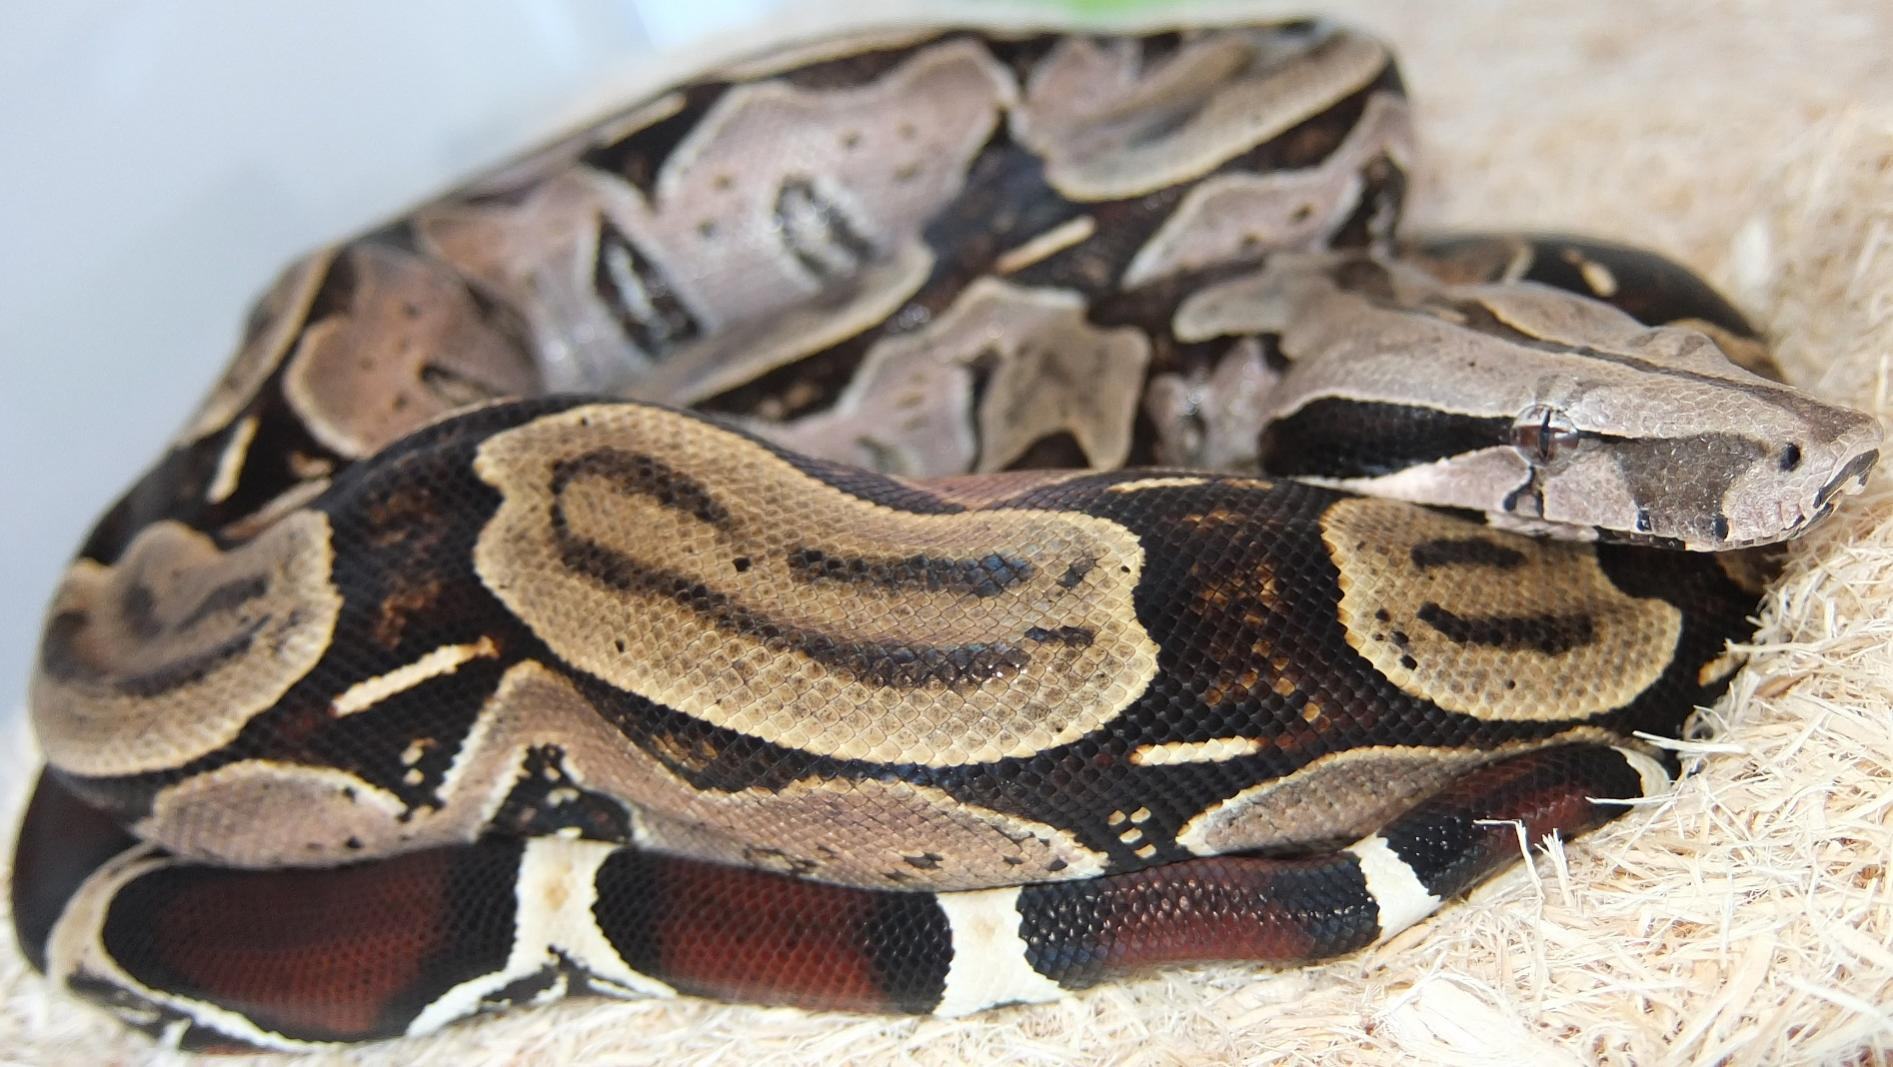 True Red Tail Boa True Red Tailed Boas Bcc